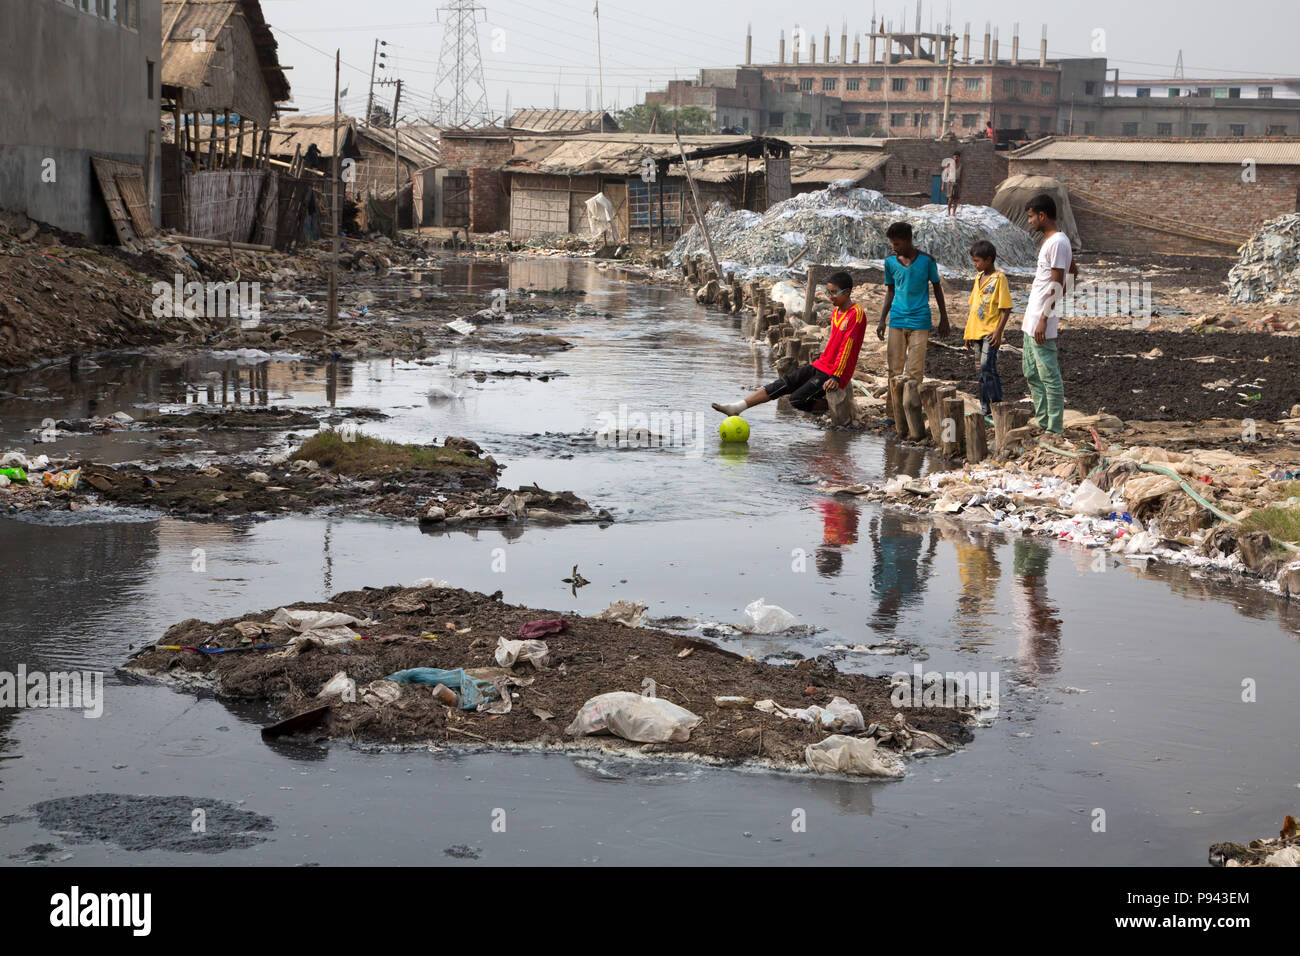 Young men playing in polluted river in Hazaribagh, Dhaka, Bangladesh - Stock Image